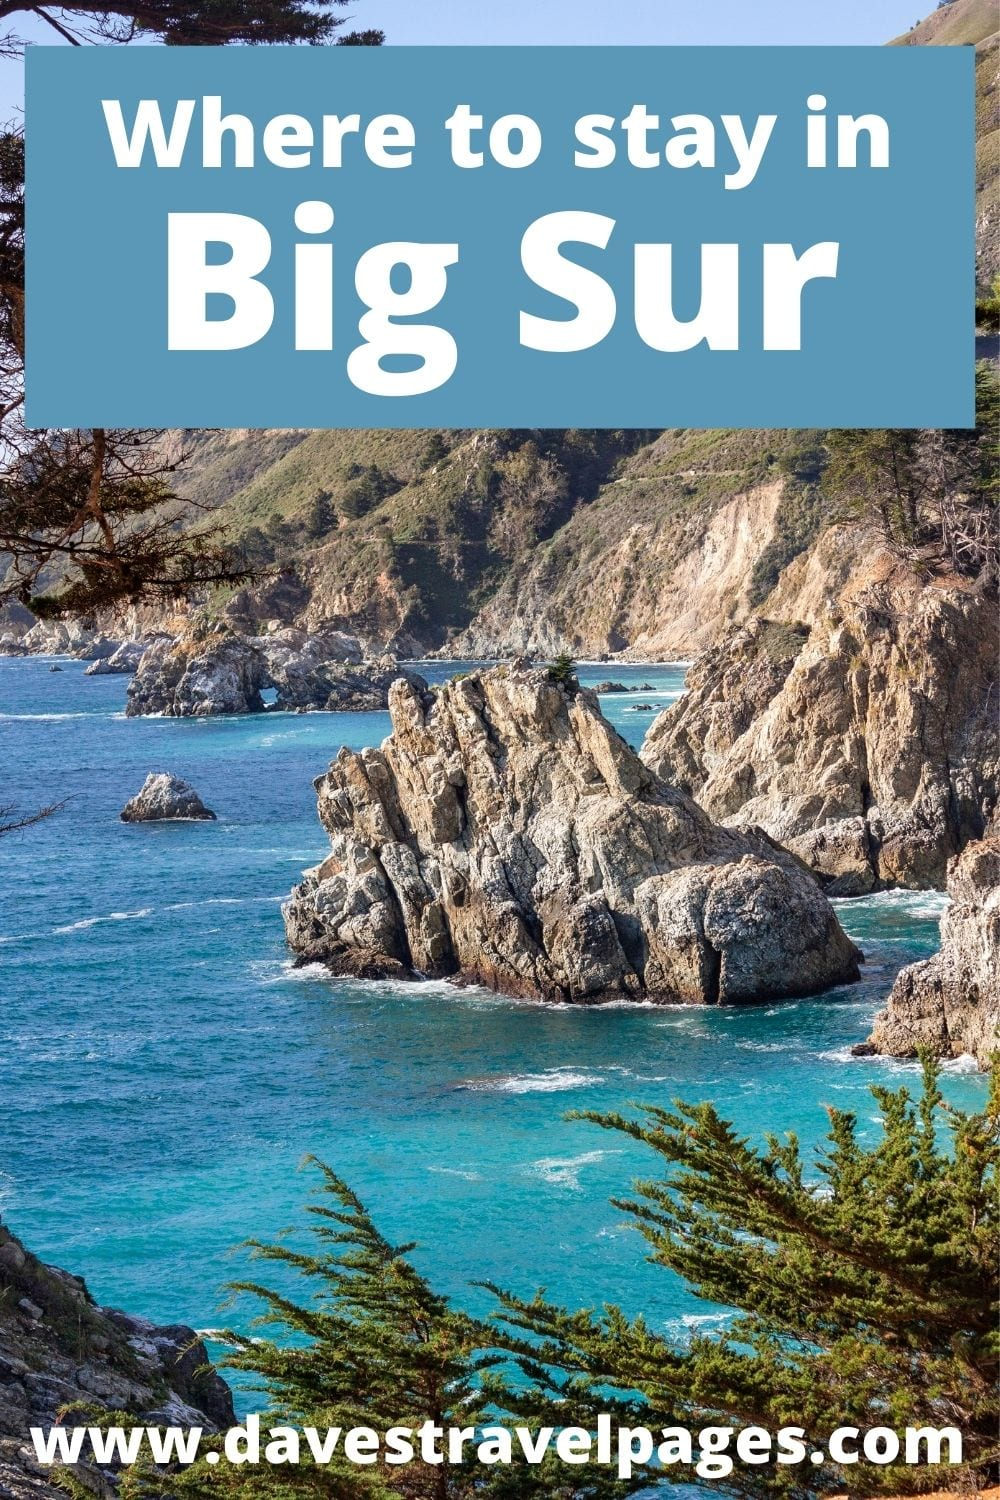 Where to stay in Big Sur BnB, Hotels and Camping